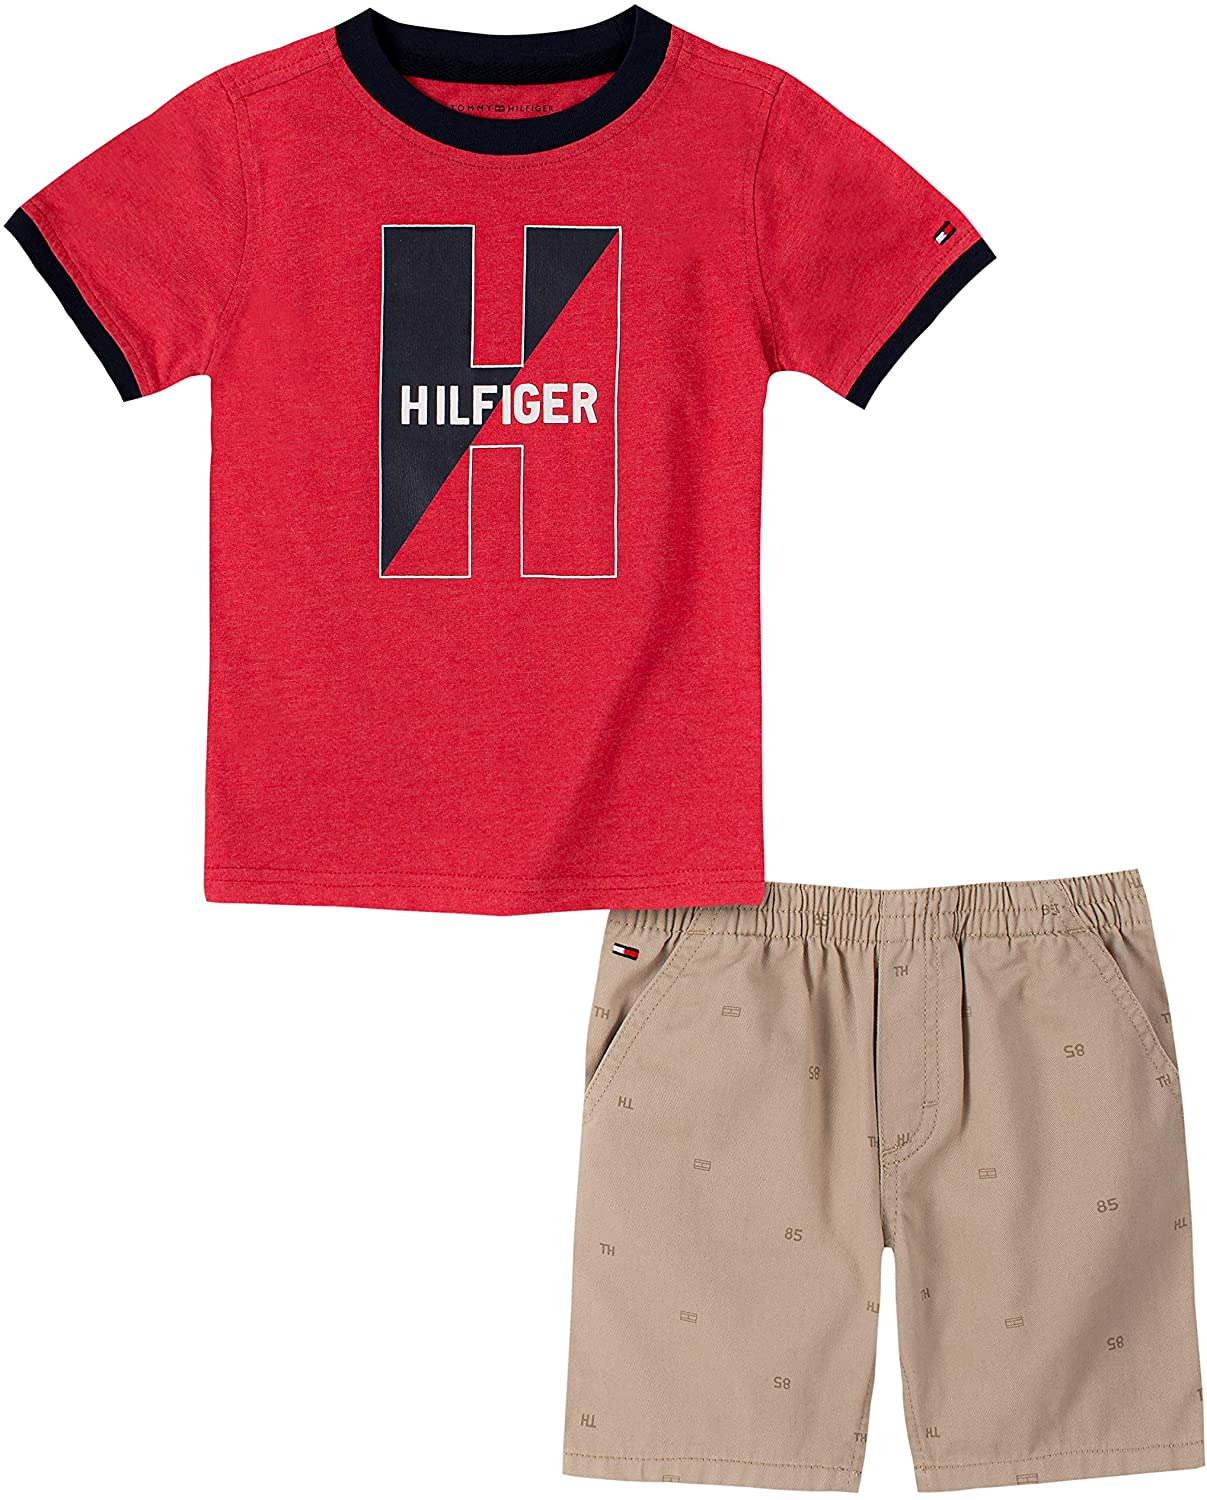 Tommy Hilfiger Baby Boys' 2 Pieces Shorts Set